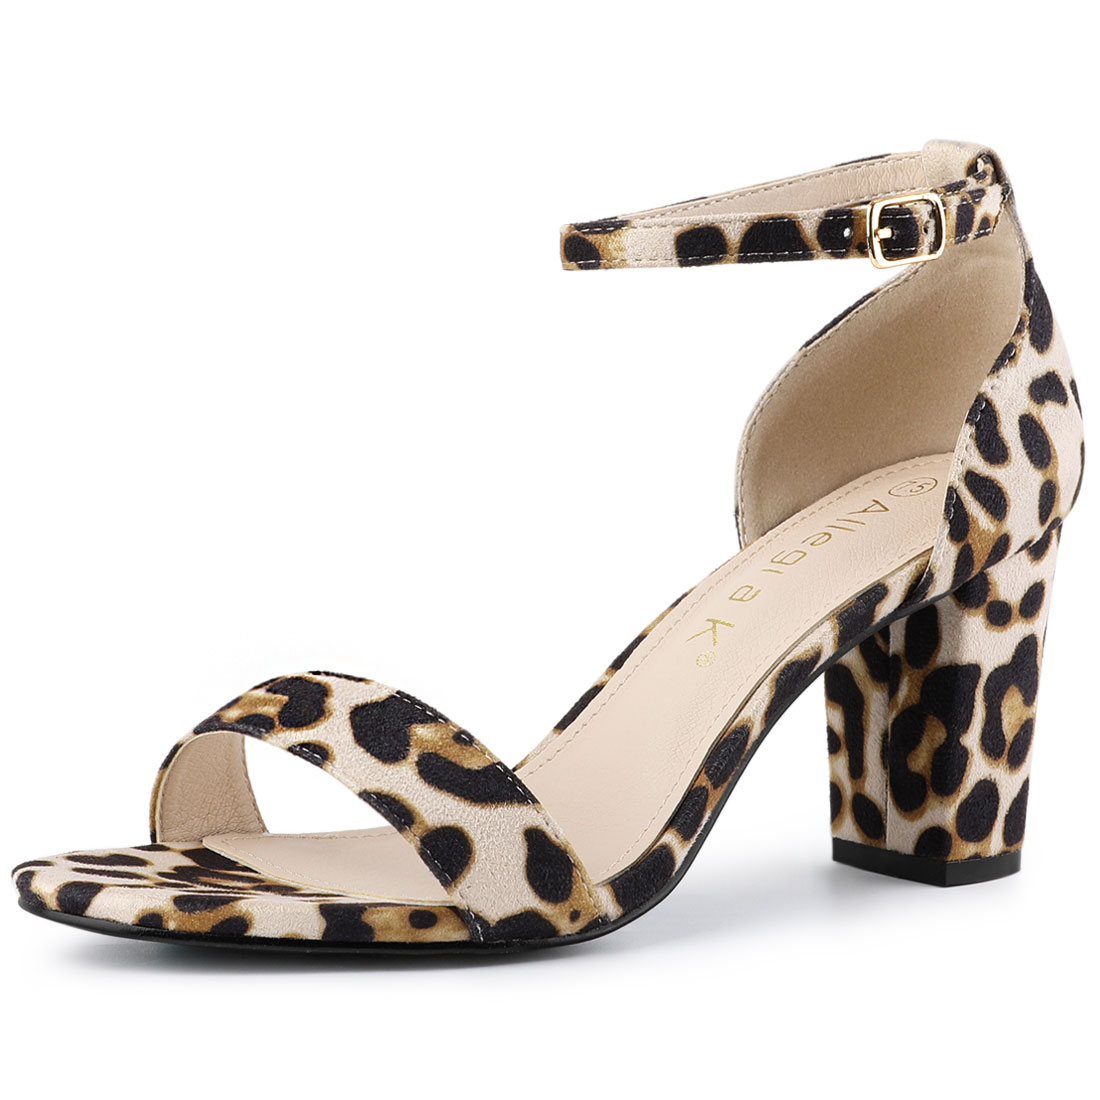 Allegra K Women's Ankle Strap Chunky High Heel Sandals White Leopard US 10